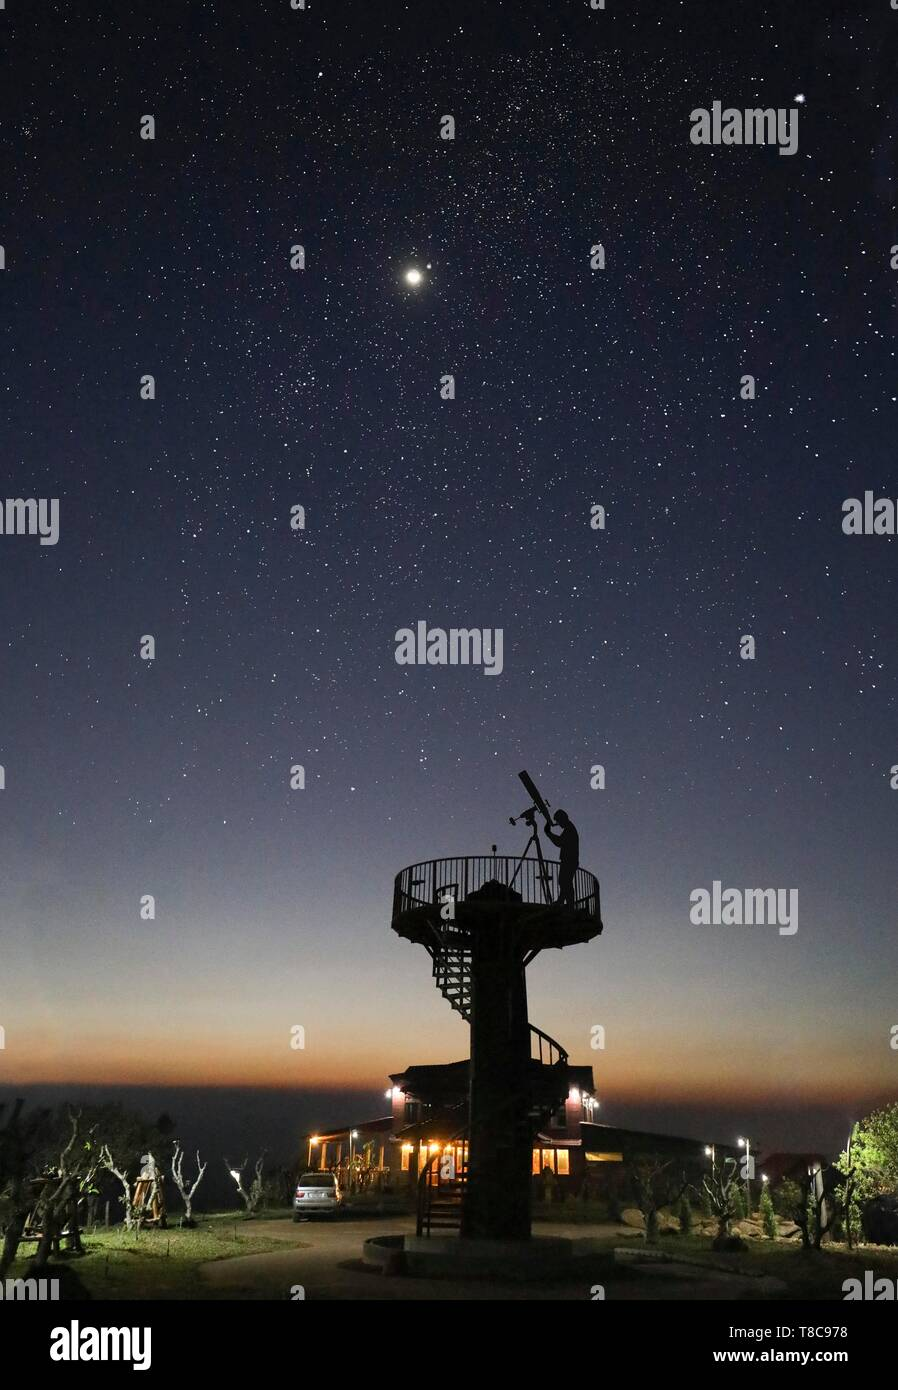 Observatory with telescope for observing the stars, starry